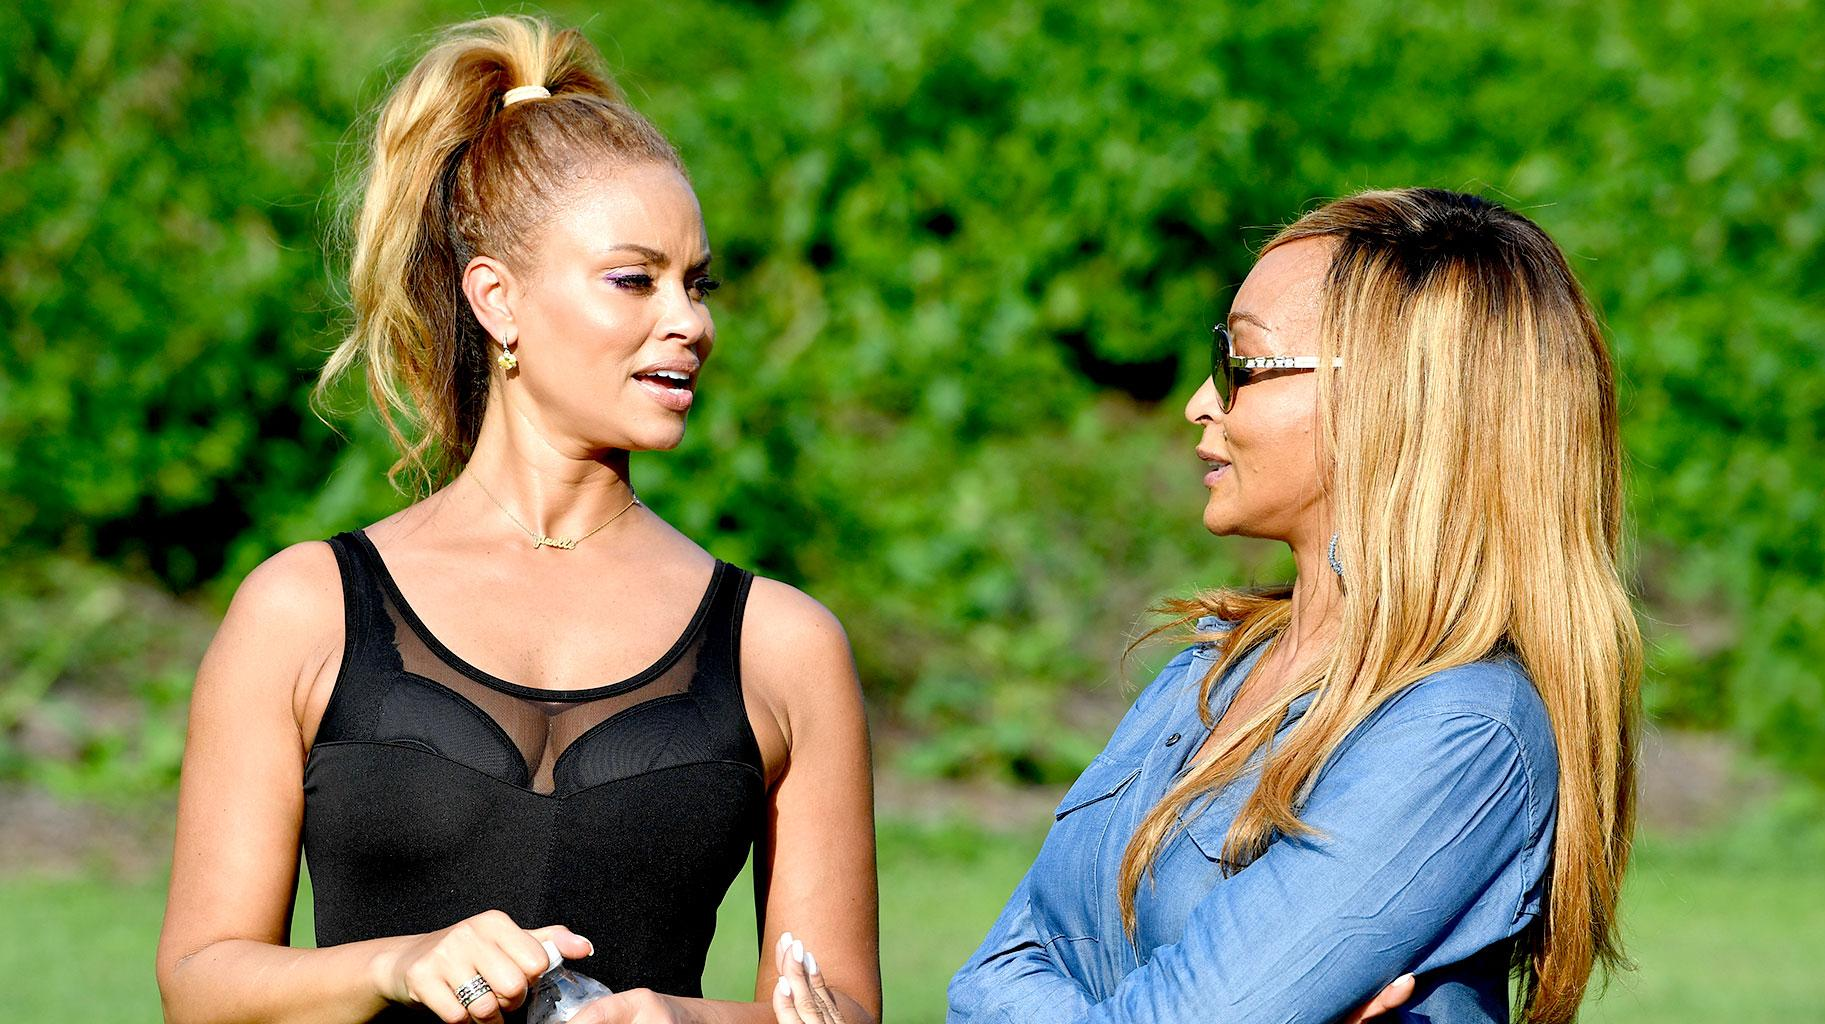 RHOP: Gizelle Bryant Claims She Has Not Talked To Karen Huger For Nearly A Year!